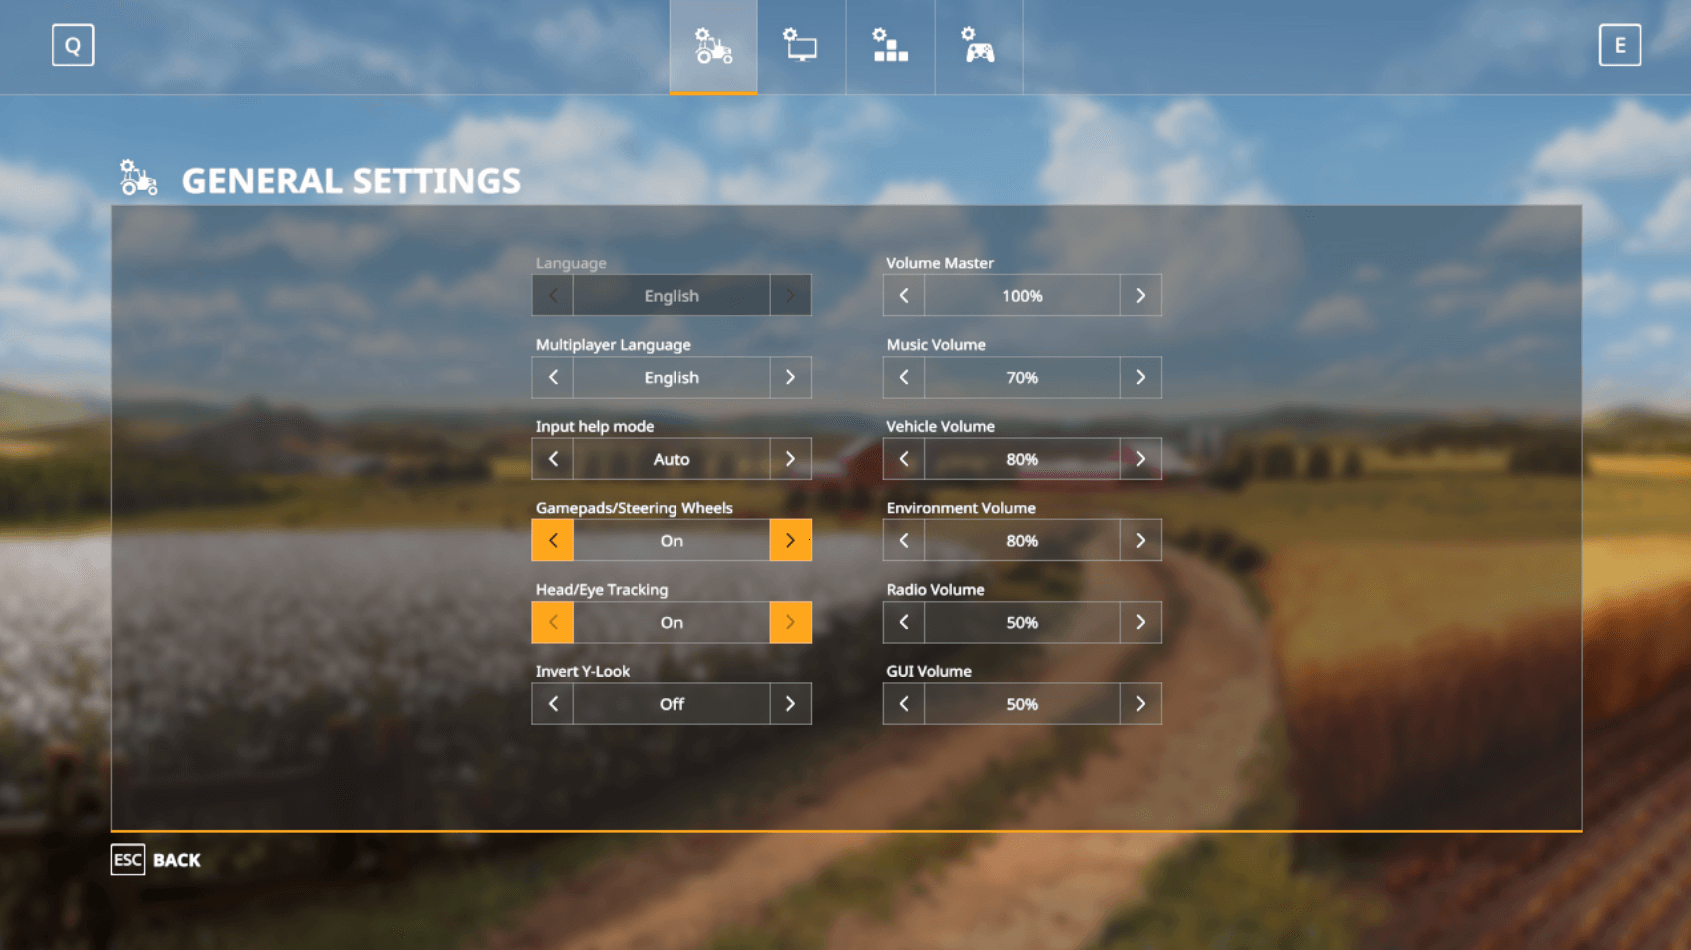 Head Tracking games troubleshooting and setting with